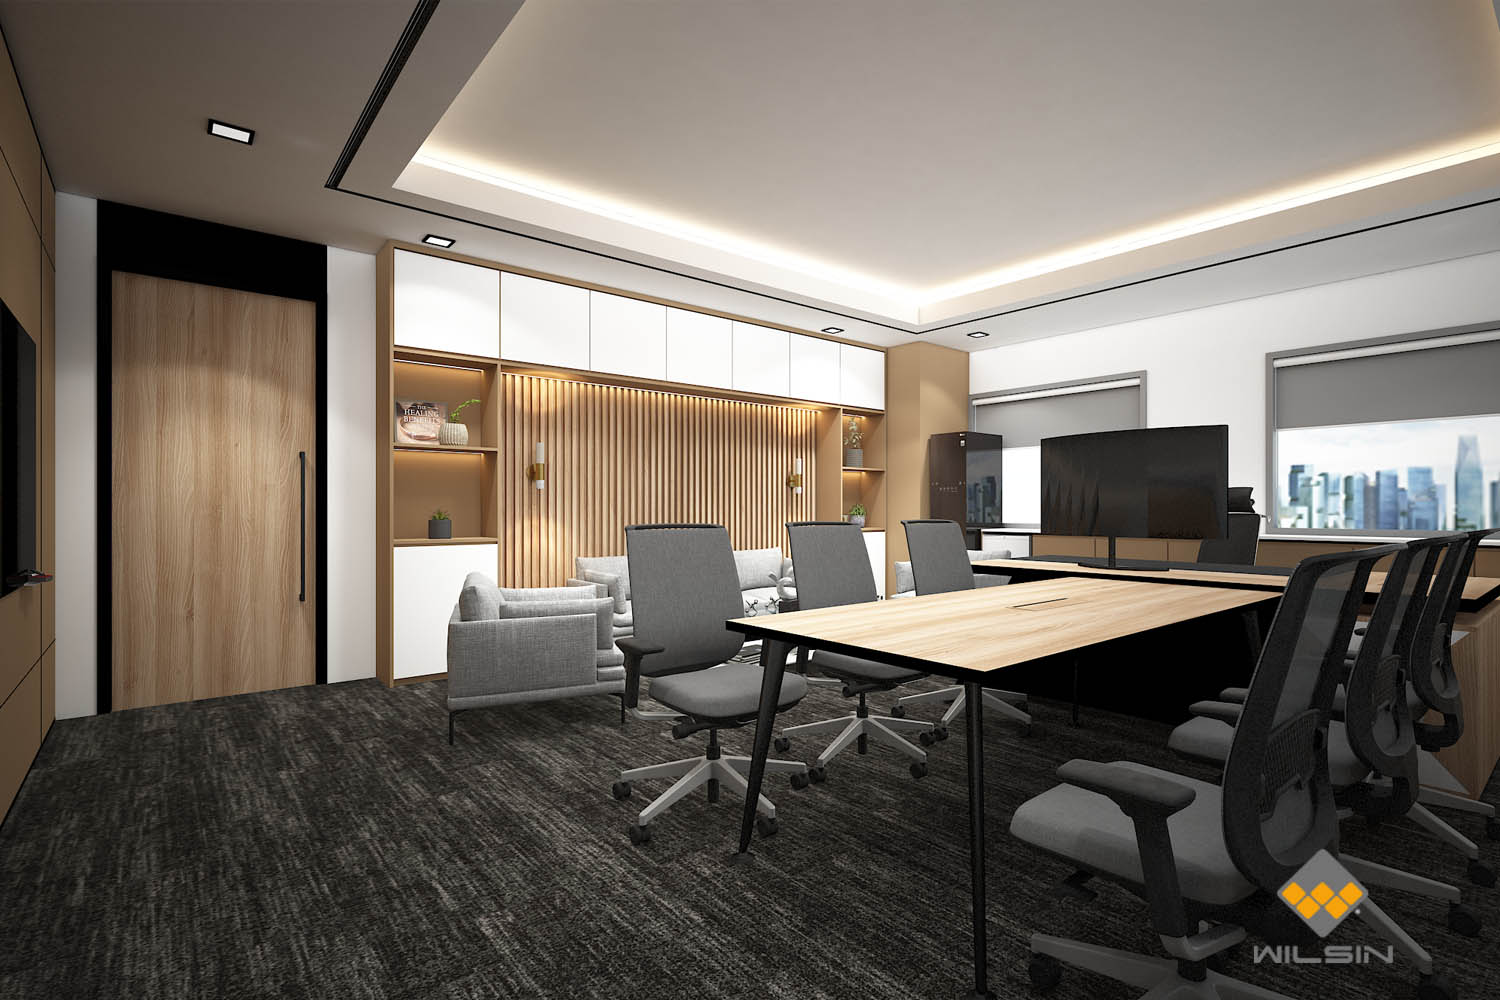 Ideas Design Render of Executive Management Office With Meeting Table